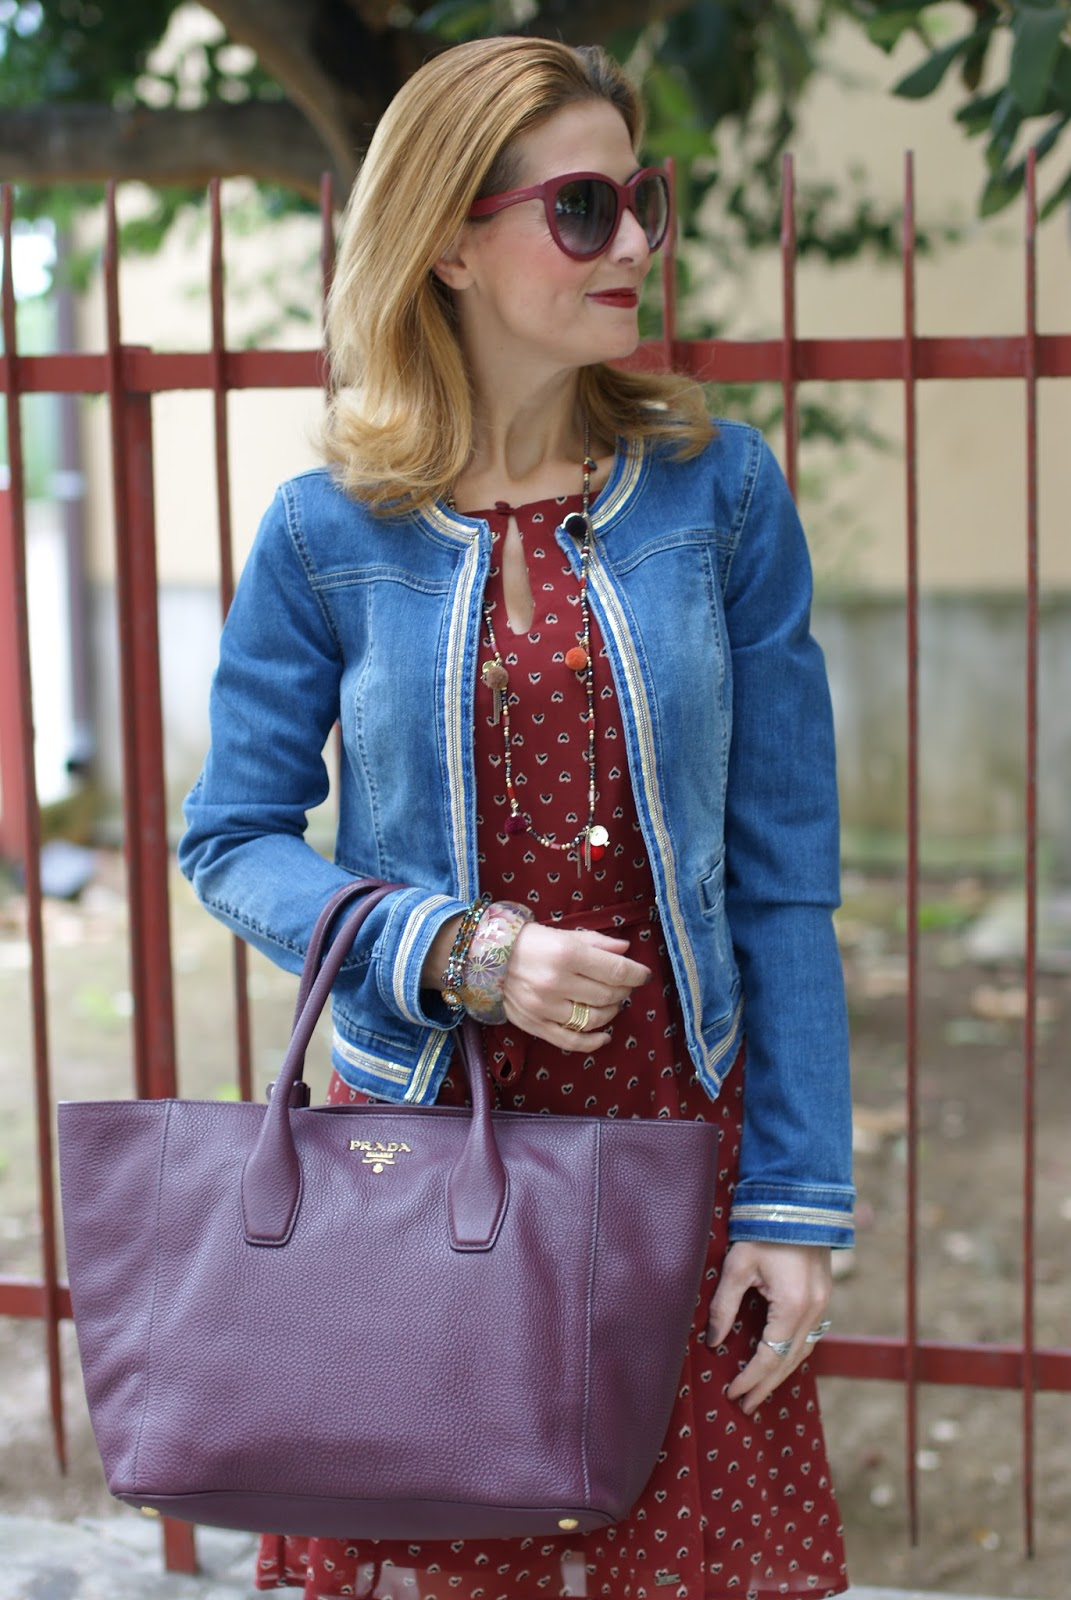 Mismash dress, Prada tote with Fall colors and denim jacket on Fashion and Cookies fashion blog, fashion blogger style